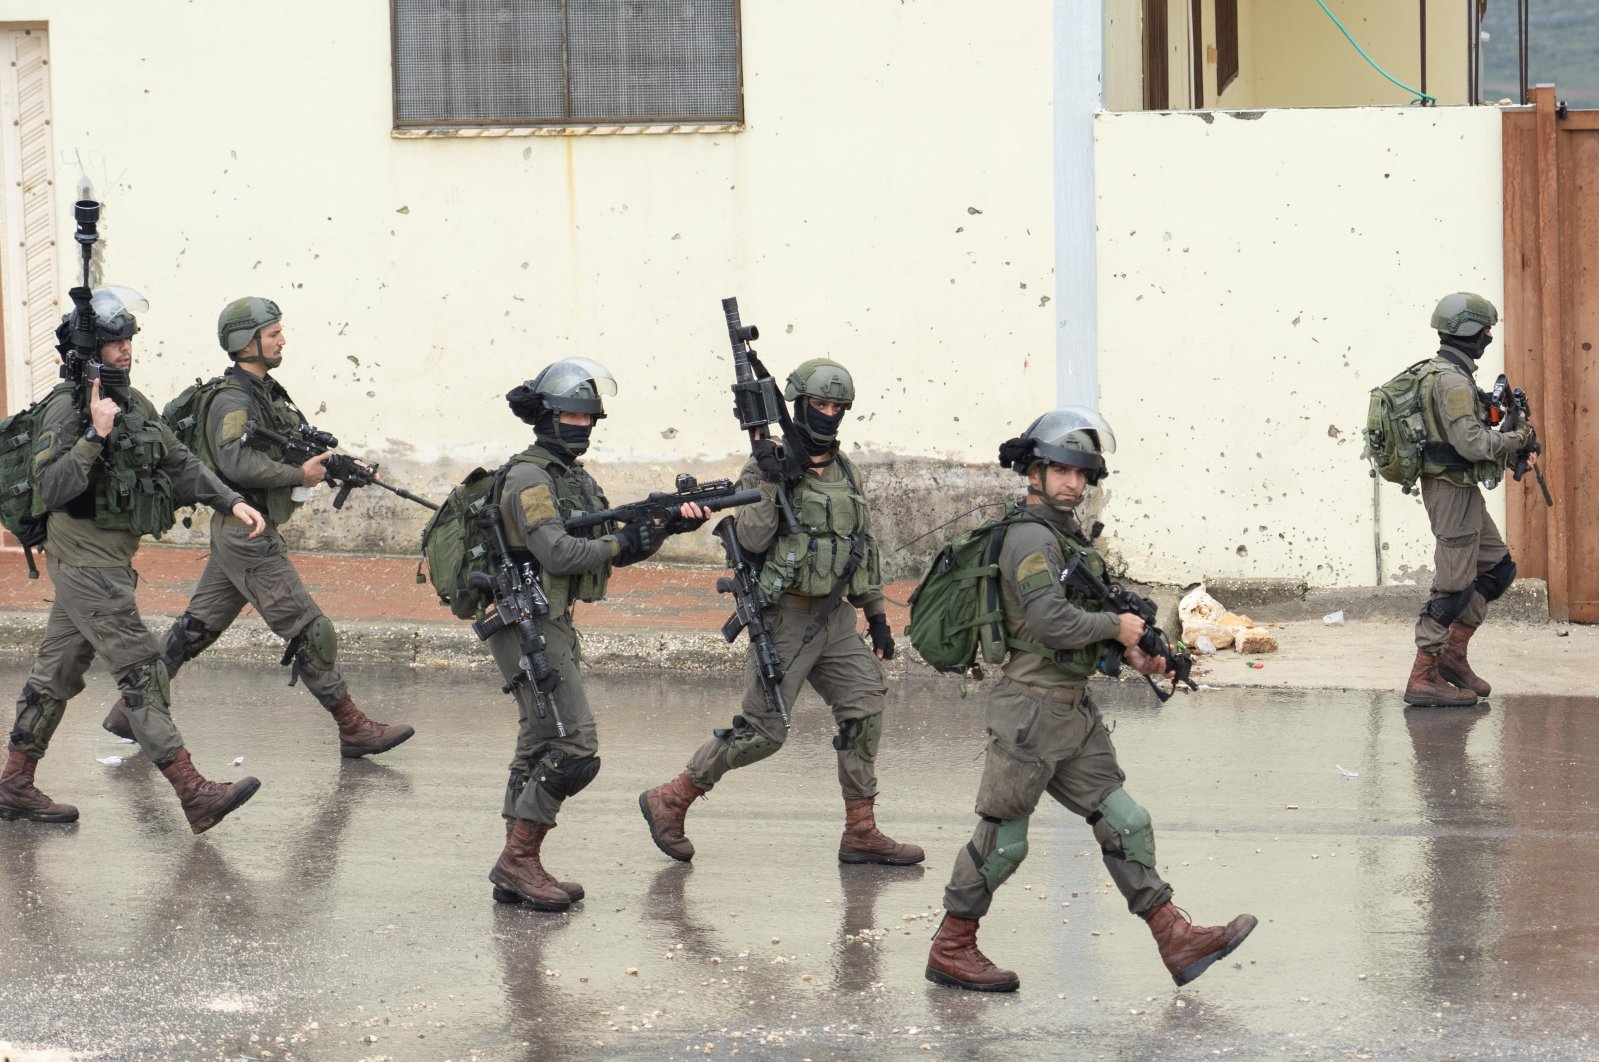 Israeli soldiers patrol a street near the city Nablus in the occupied West Bank, April 10, 2020.  (Getty Images)